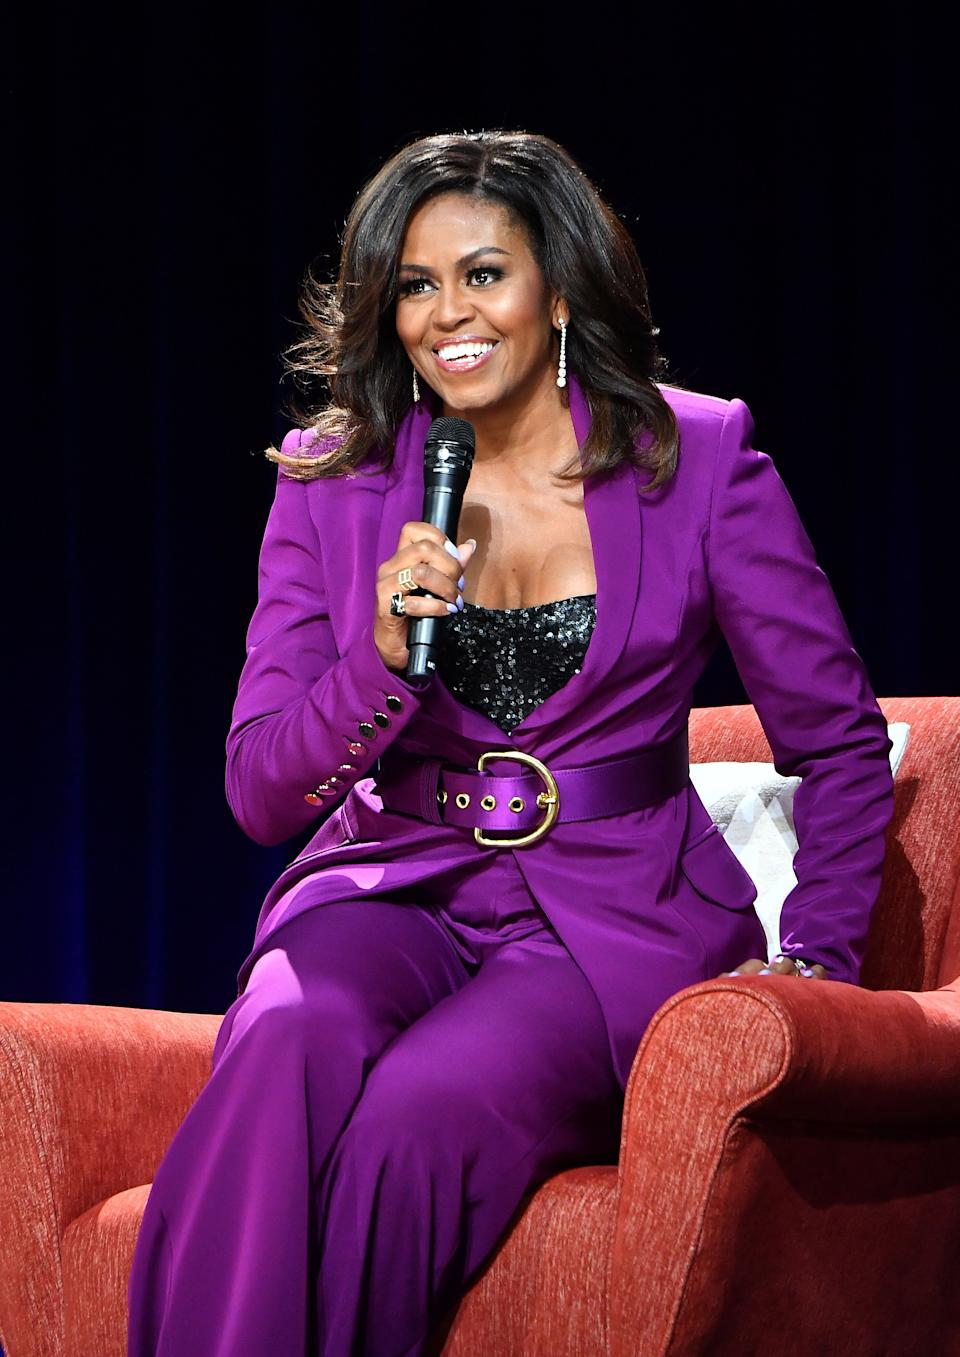 """Obama headlines a book tour stop, """"Becoming: An Intimate Conversation with Michelle Obama,"""" at the State Farm Arena on May 11 in Atlanta. (Photo: Paras Griffin via Getty Images)"""